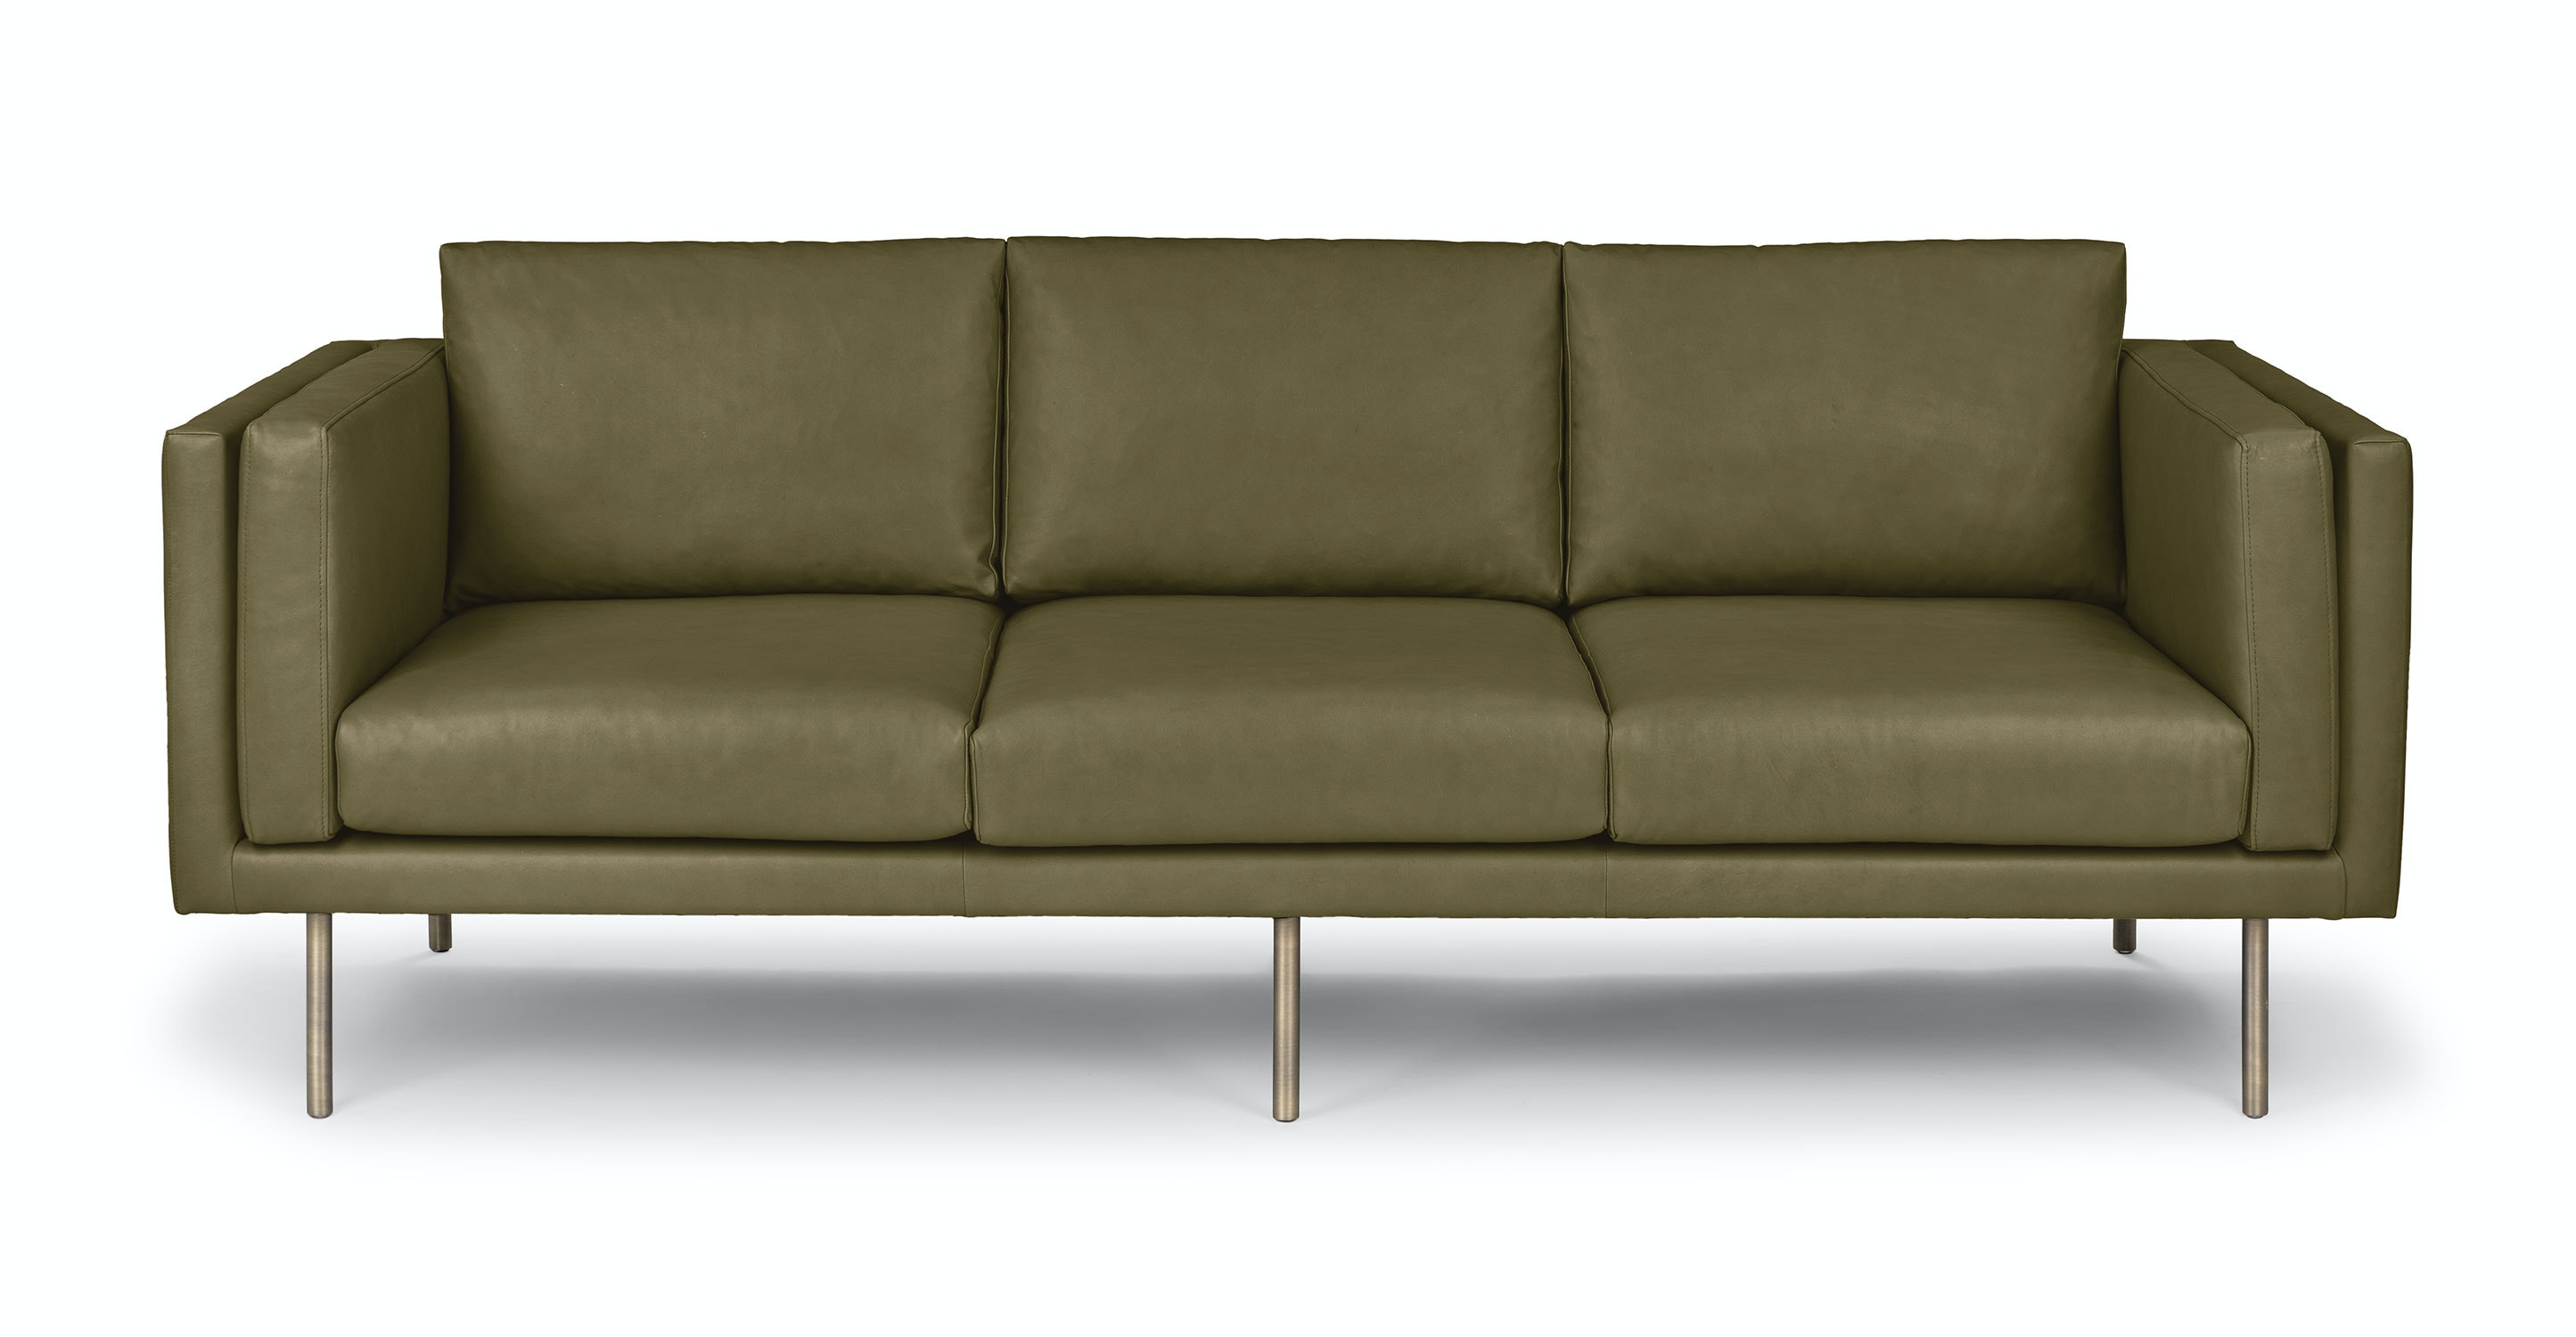 Belez Yuma Olive Green Sofa Sofas Article Modern